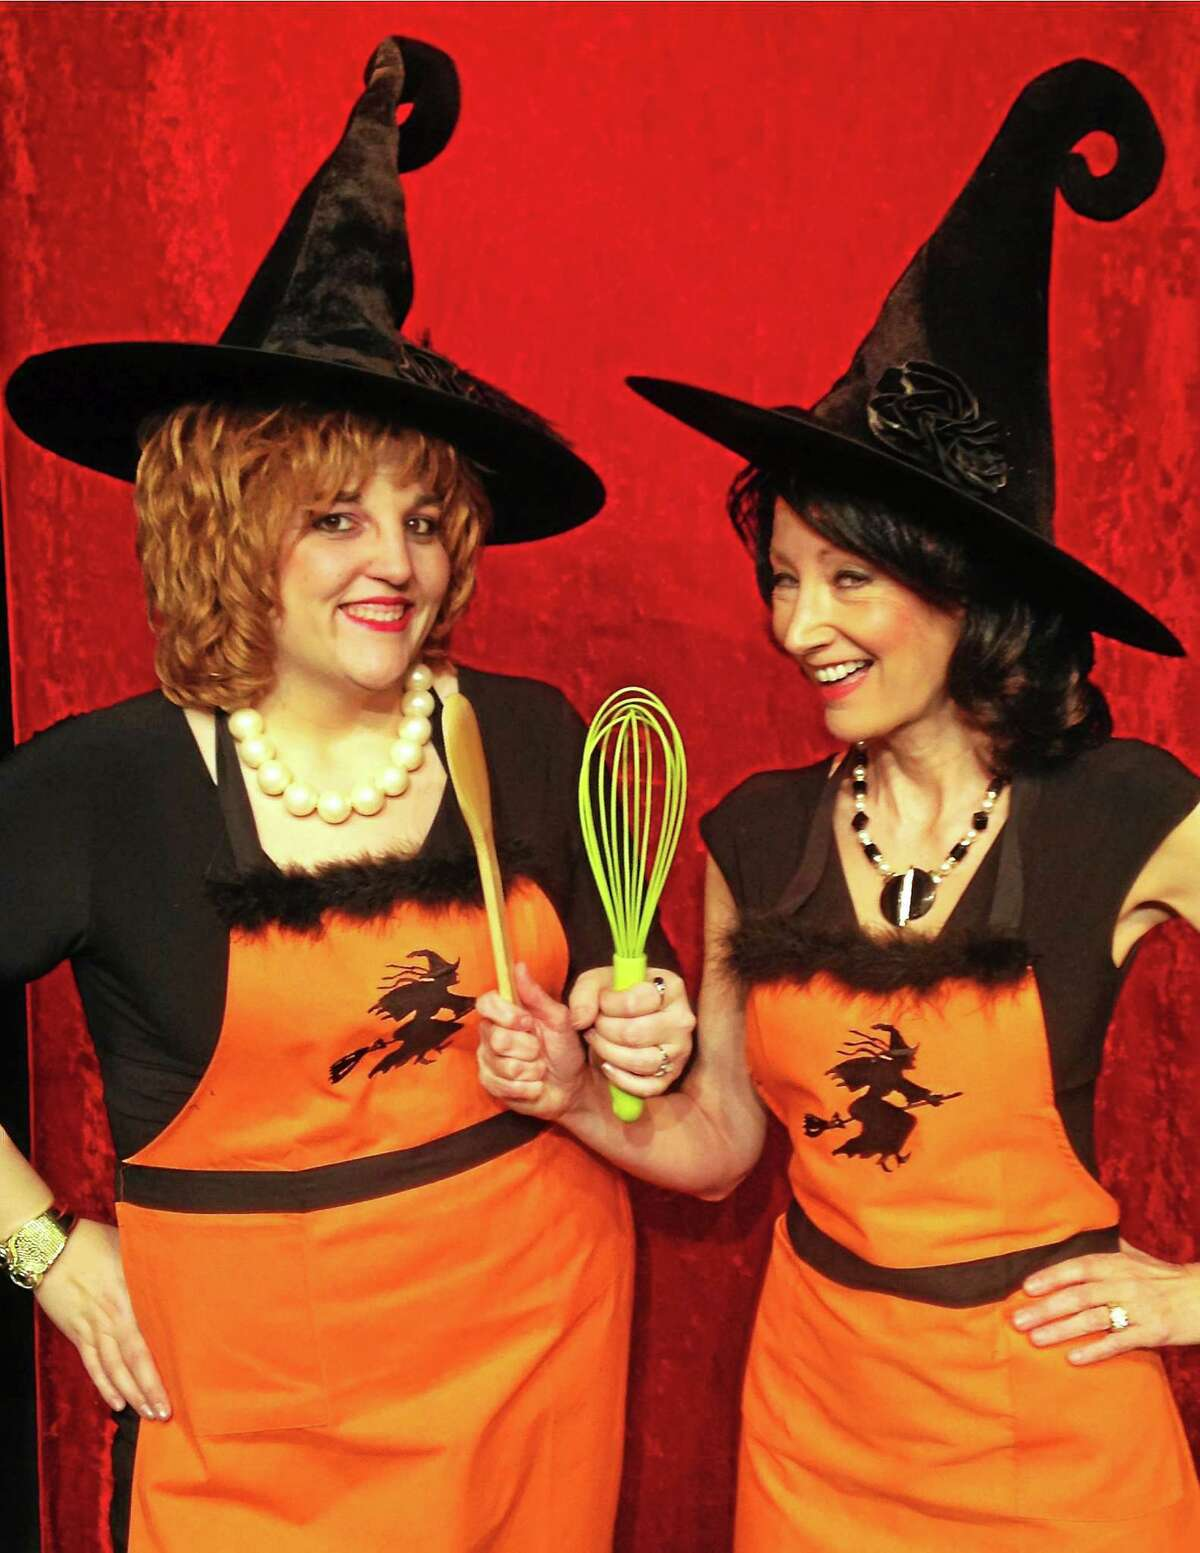 """Contributed photo """"The Kitchen Witches opens March 6 at the Connecticut Cabaret Theatre in Berlin.The comedy tells the story of two ìmatureî rival cable-access cooking show hostesses Isobel Lomax and Dolly Biddle who have hated each other for 30 years, ever since Larry Biddle dated one and married the other."""